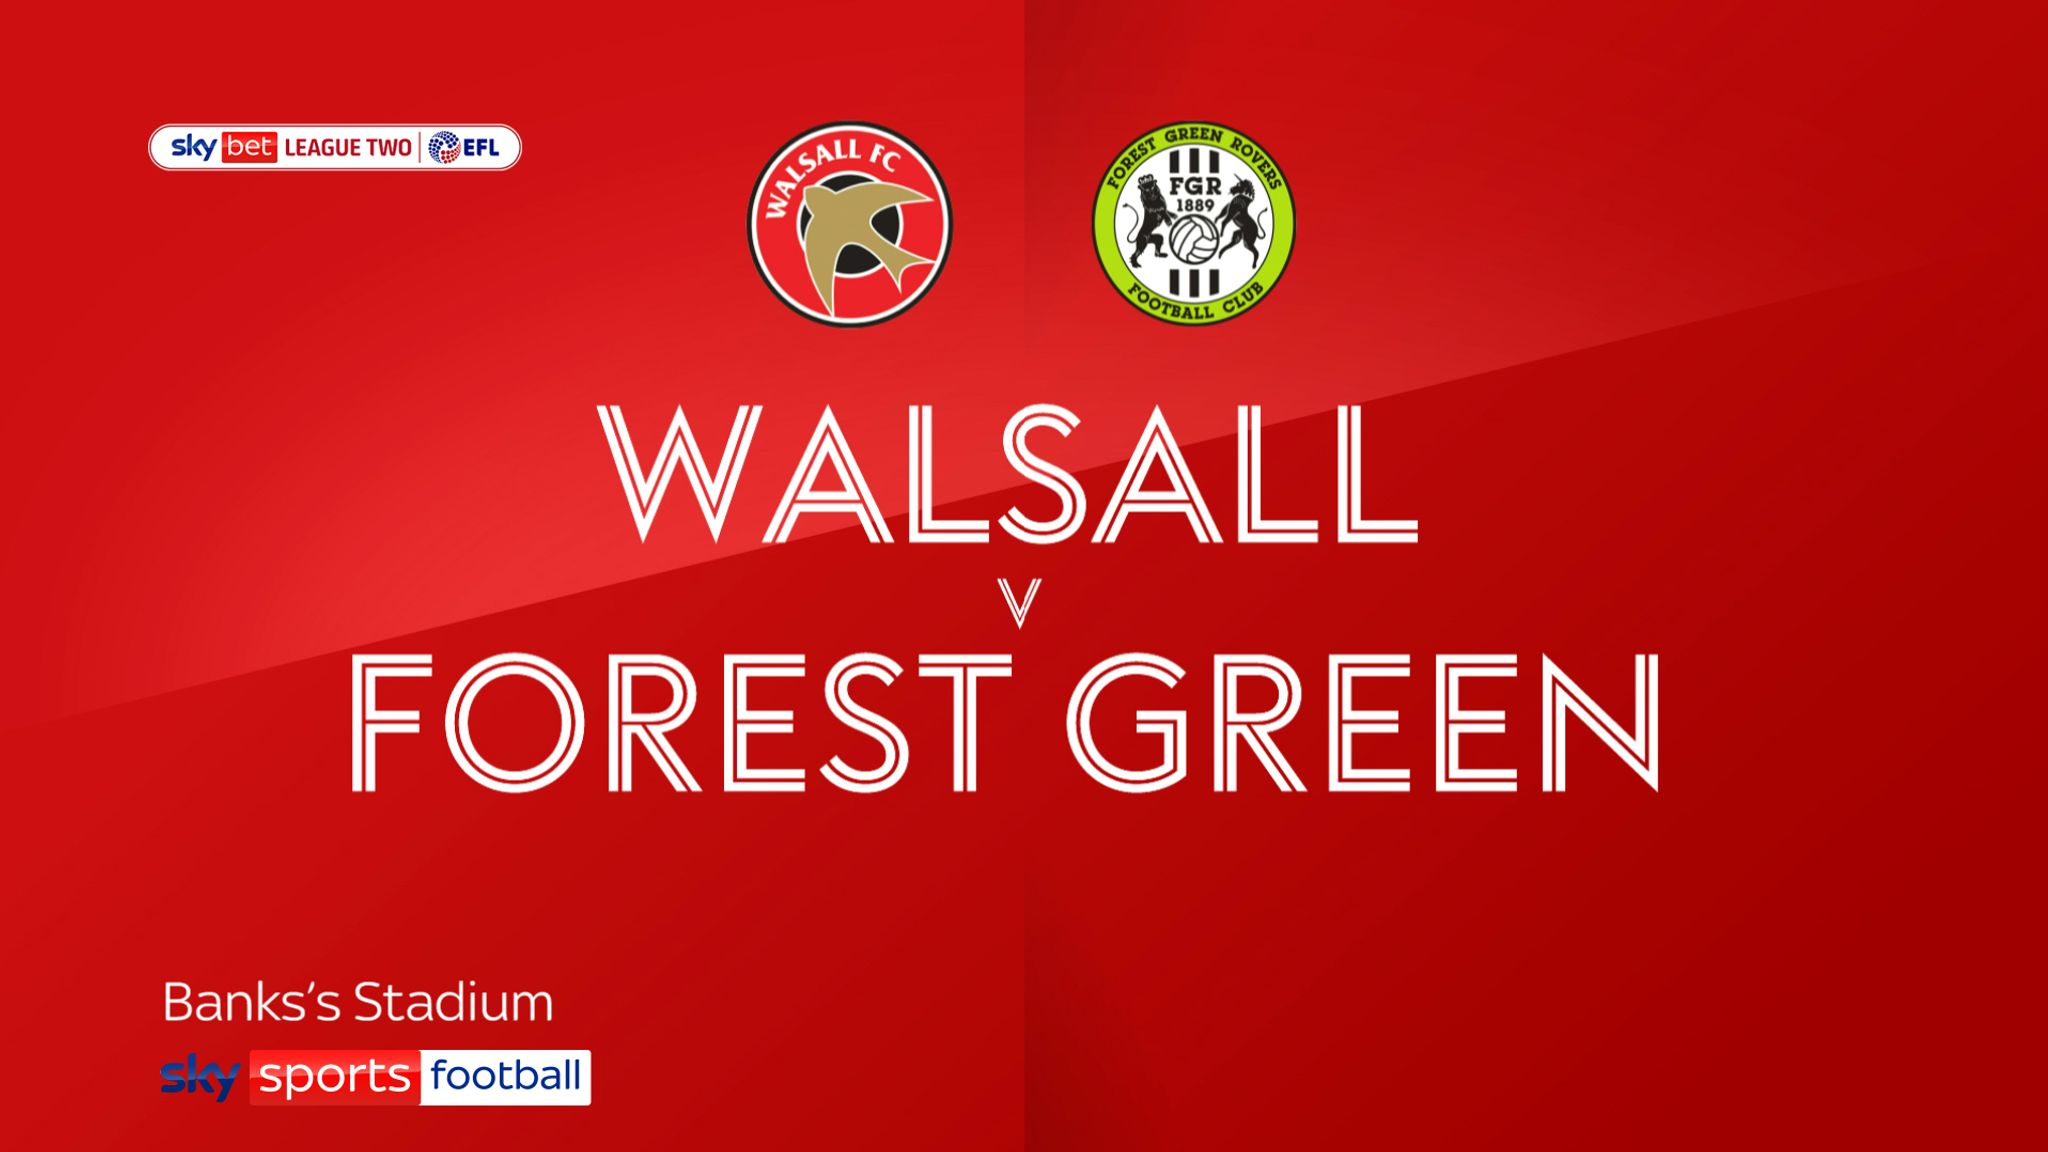 Walsall 2-1 Forest Green: Rovers' automatic promotion hopes hit at Banks's Stadium